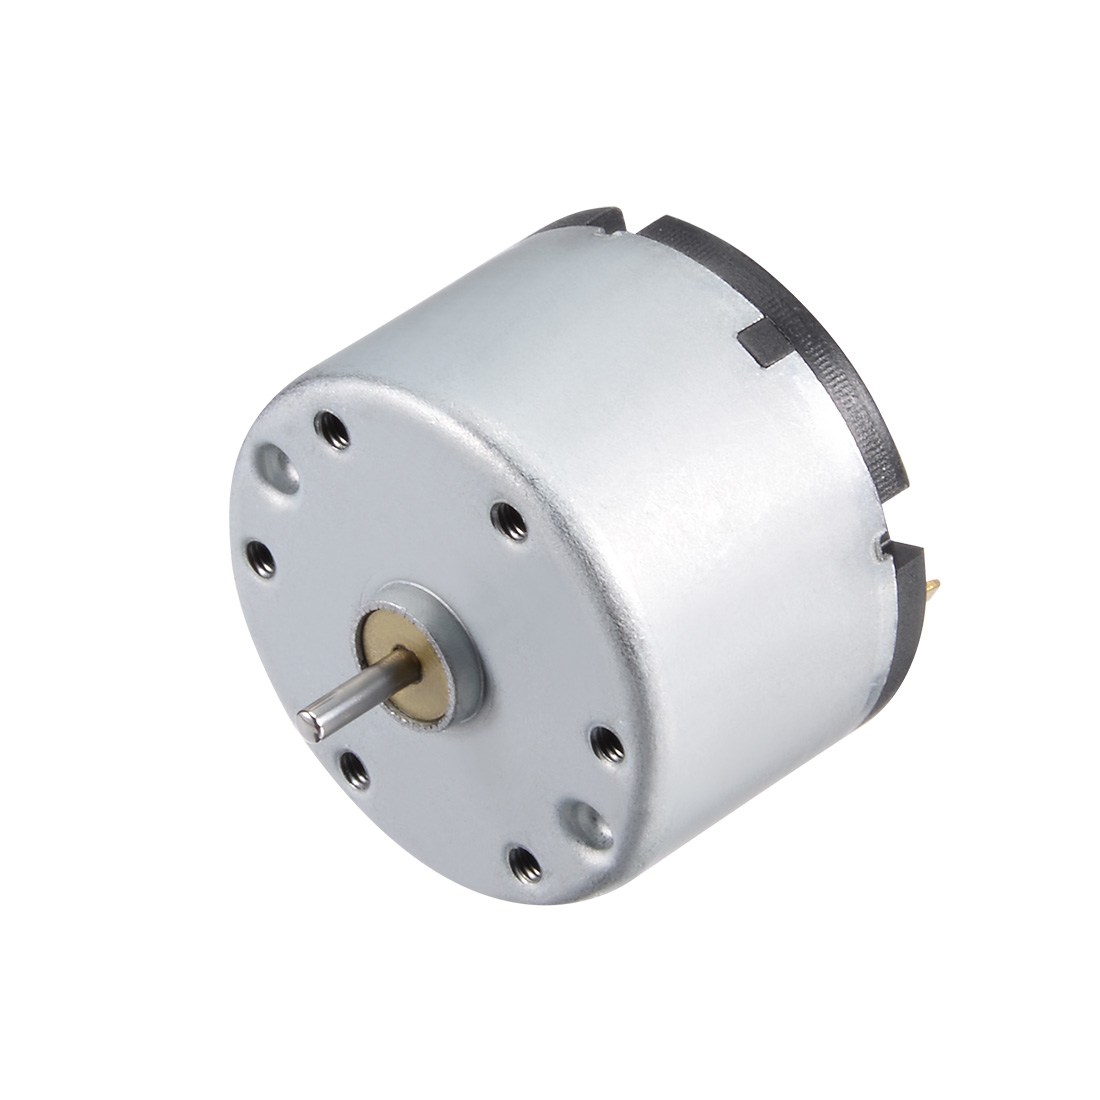 Small Motor DC 24V 6000RPM High Speed Motor for RC Hobby Toy Car Remote Control